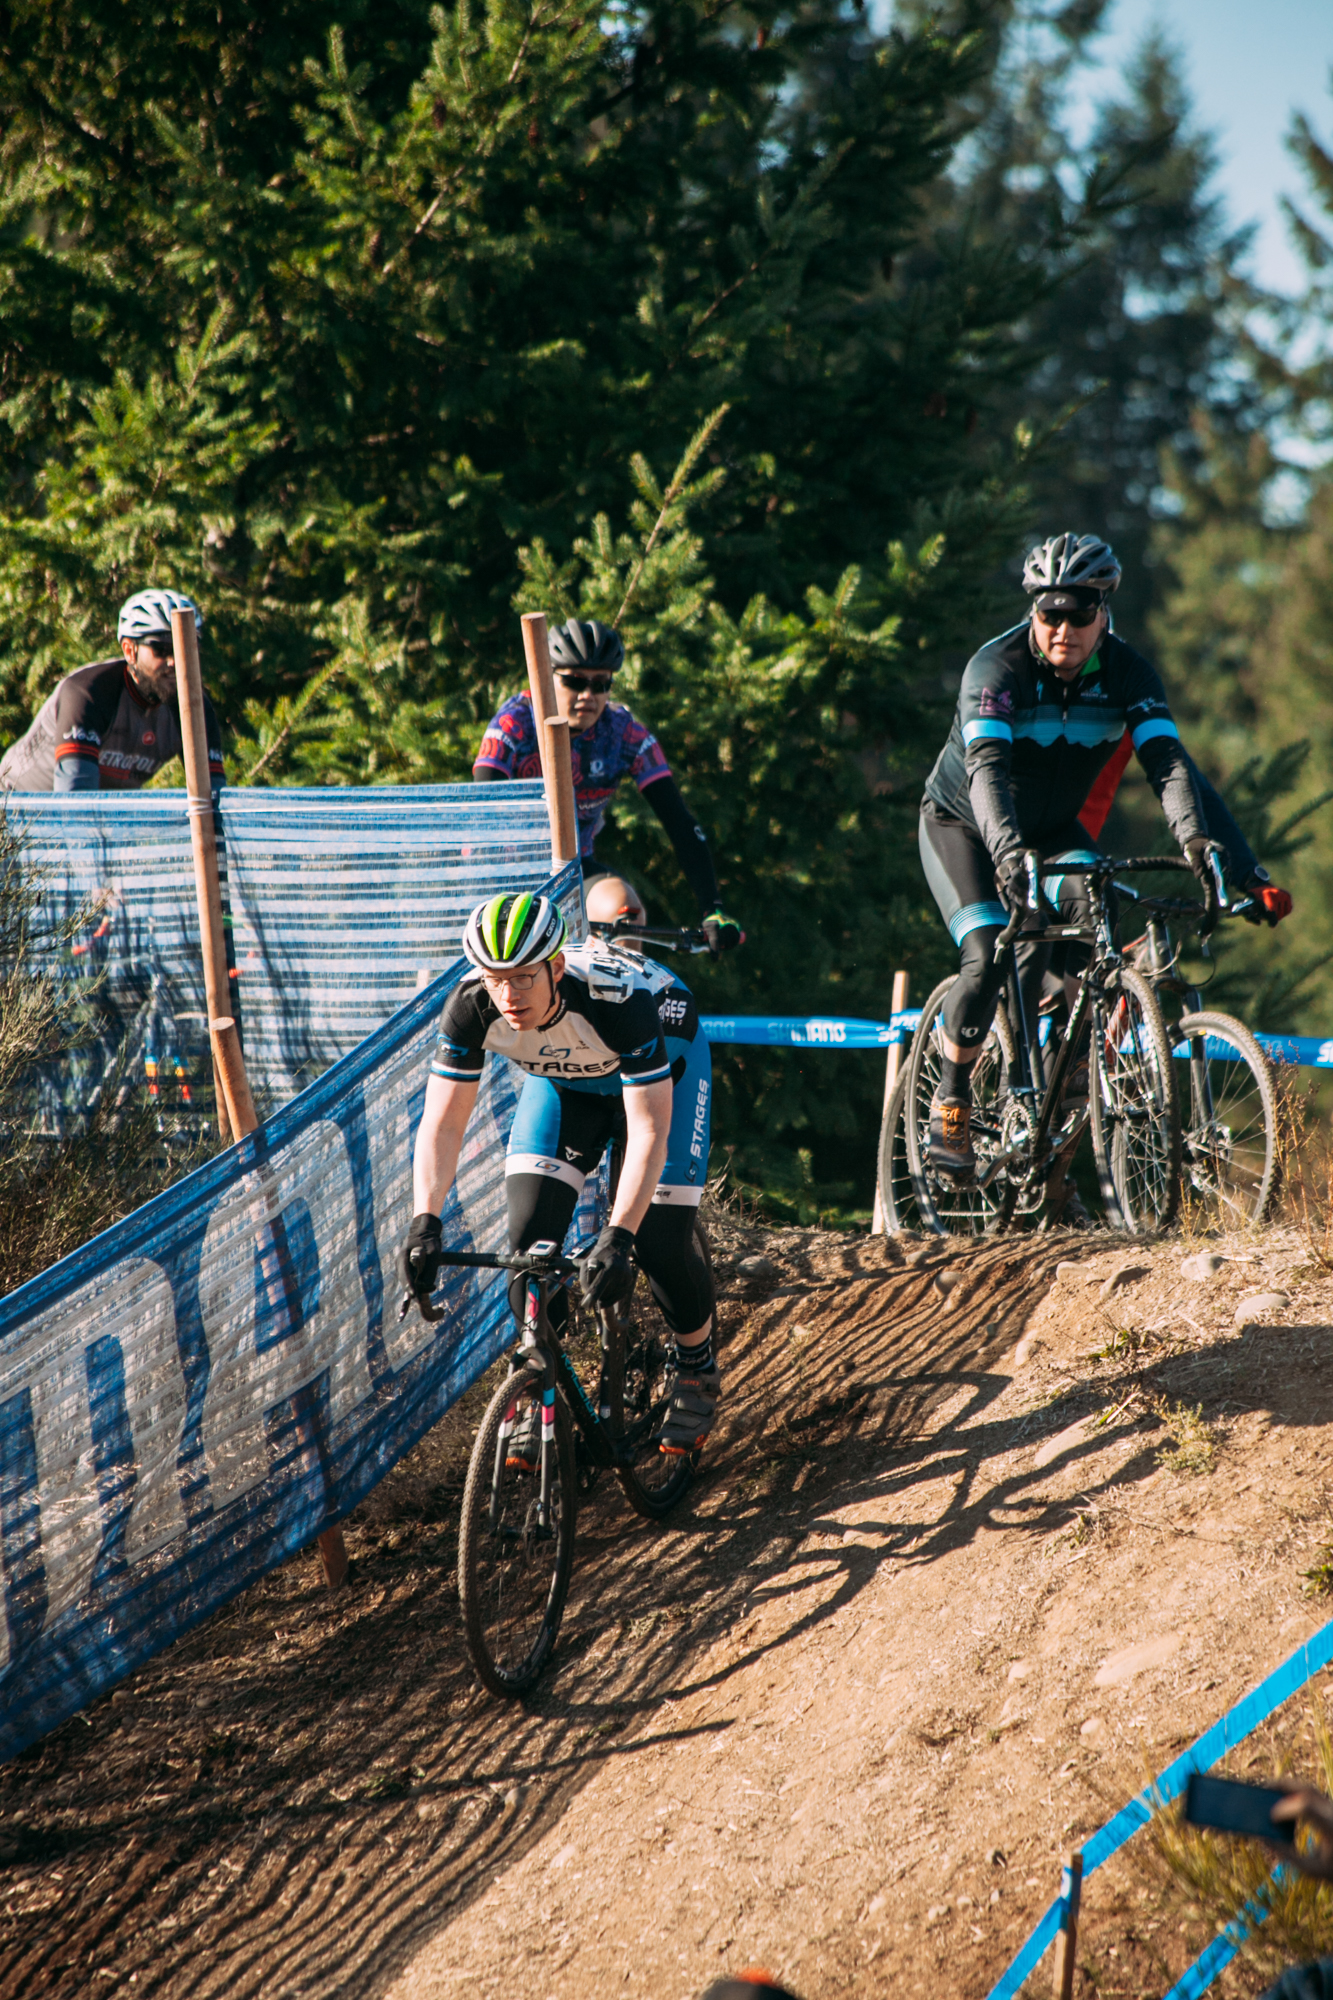 Cyclocross18_CCCX_BartonPark-mettlecycling95.jpg